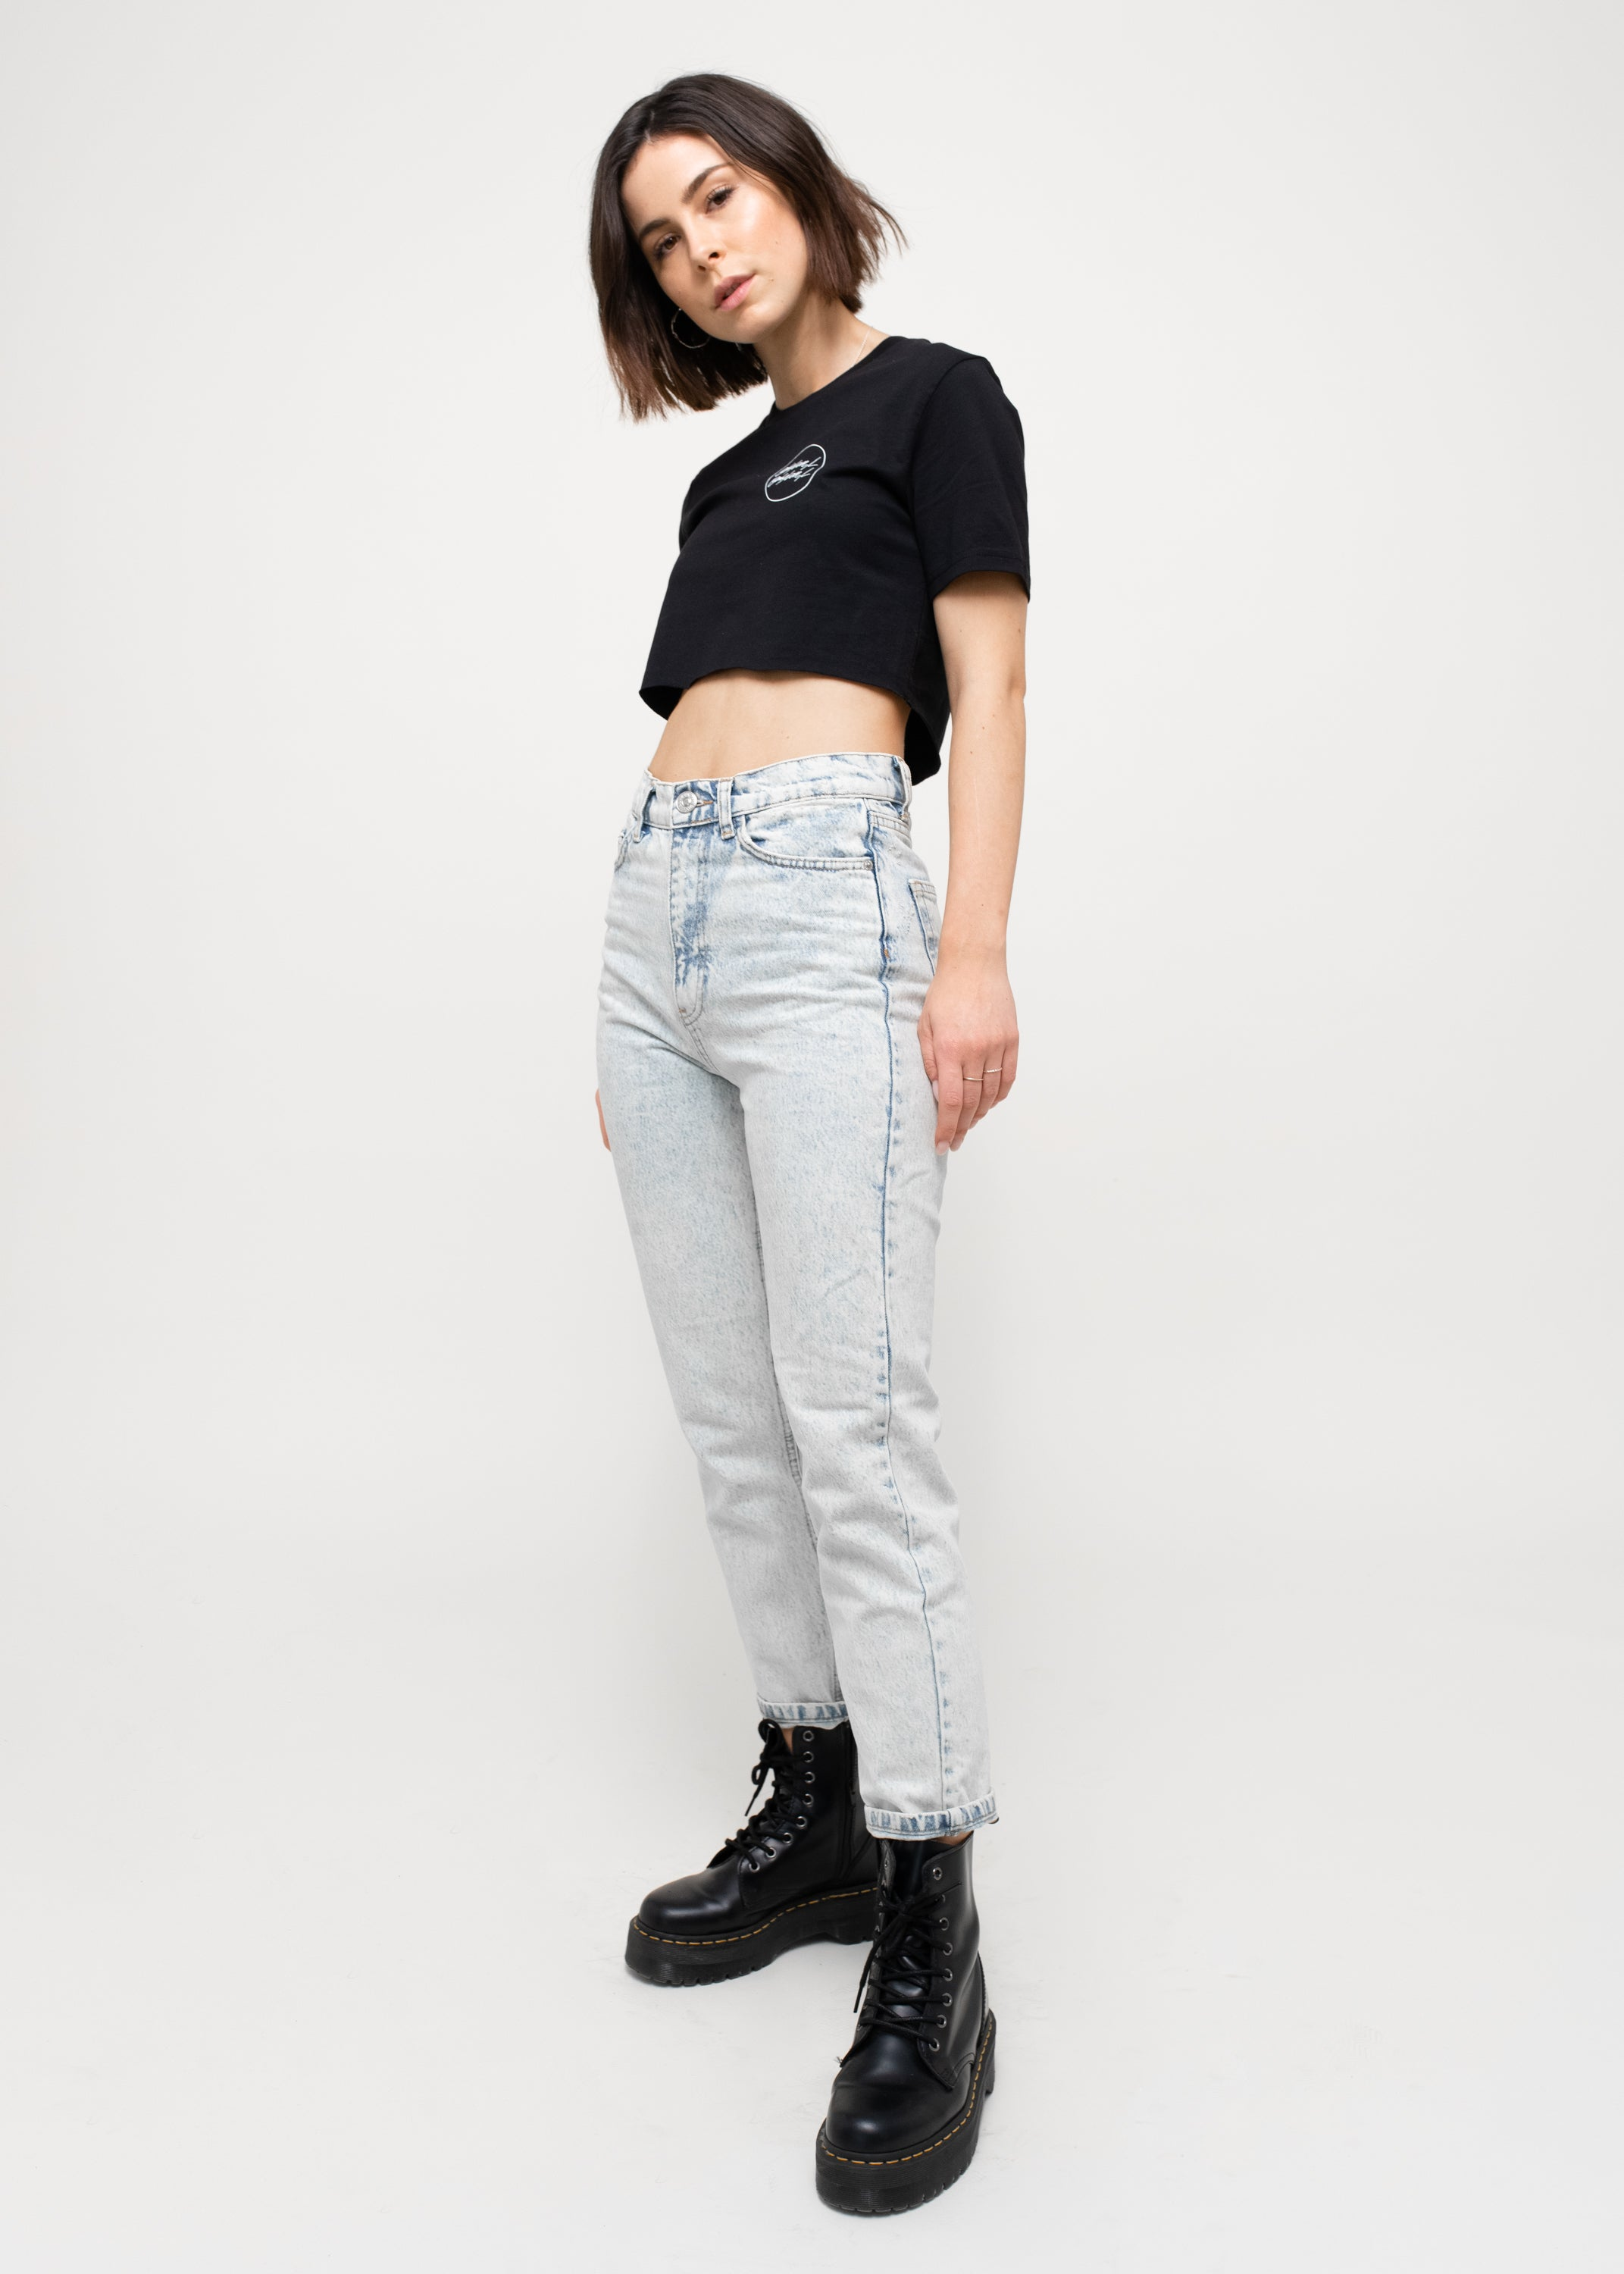 Lena - ONLY LOVE Cropped T-Shirt